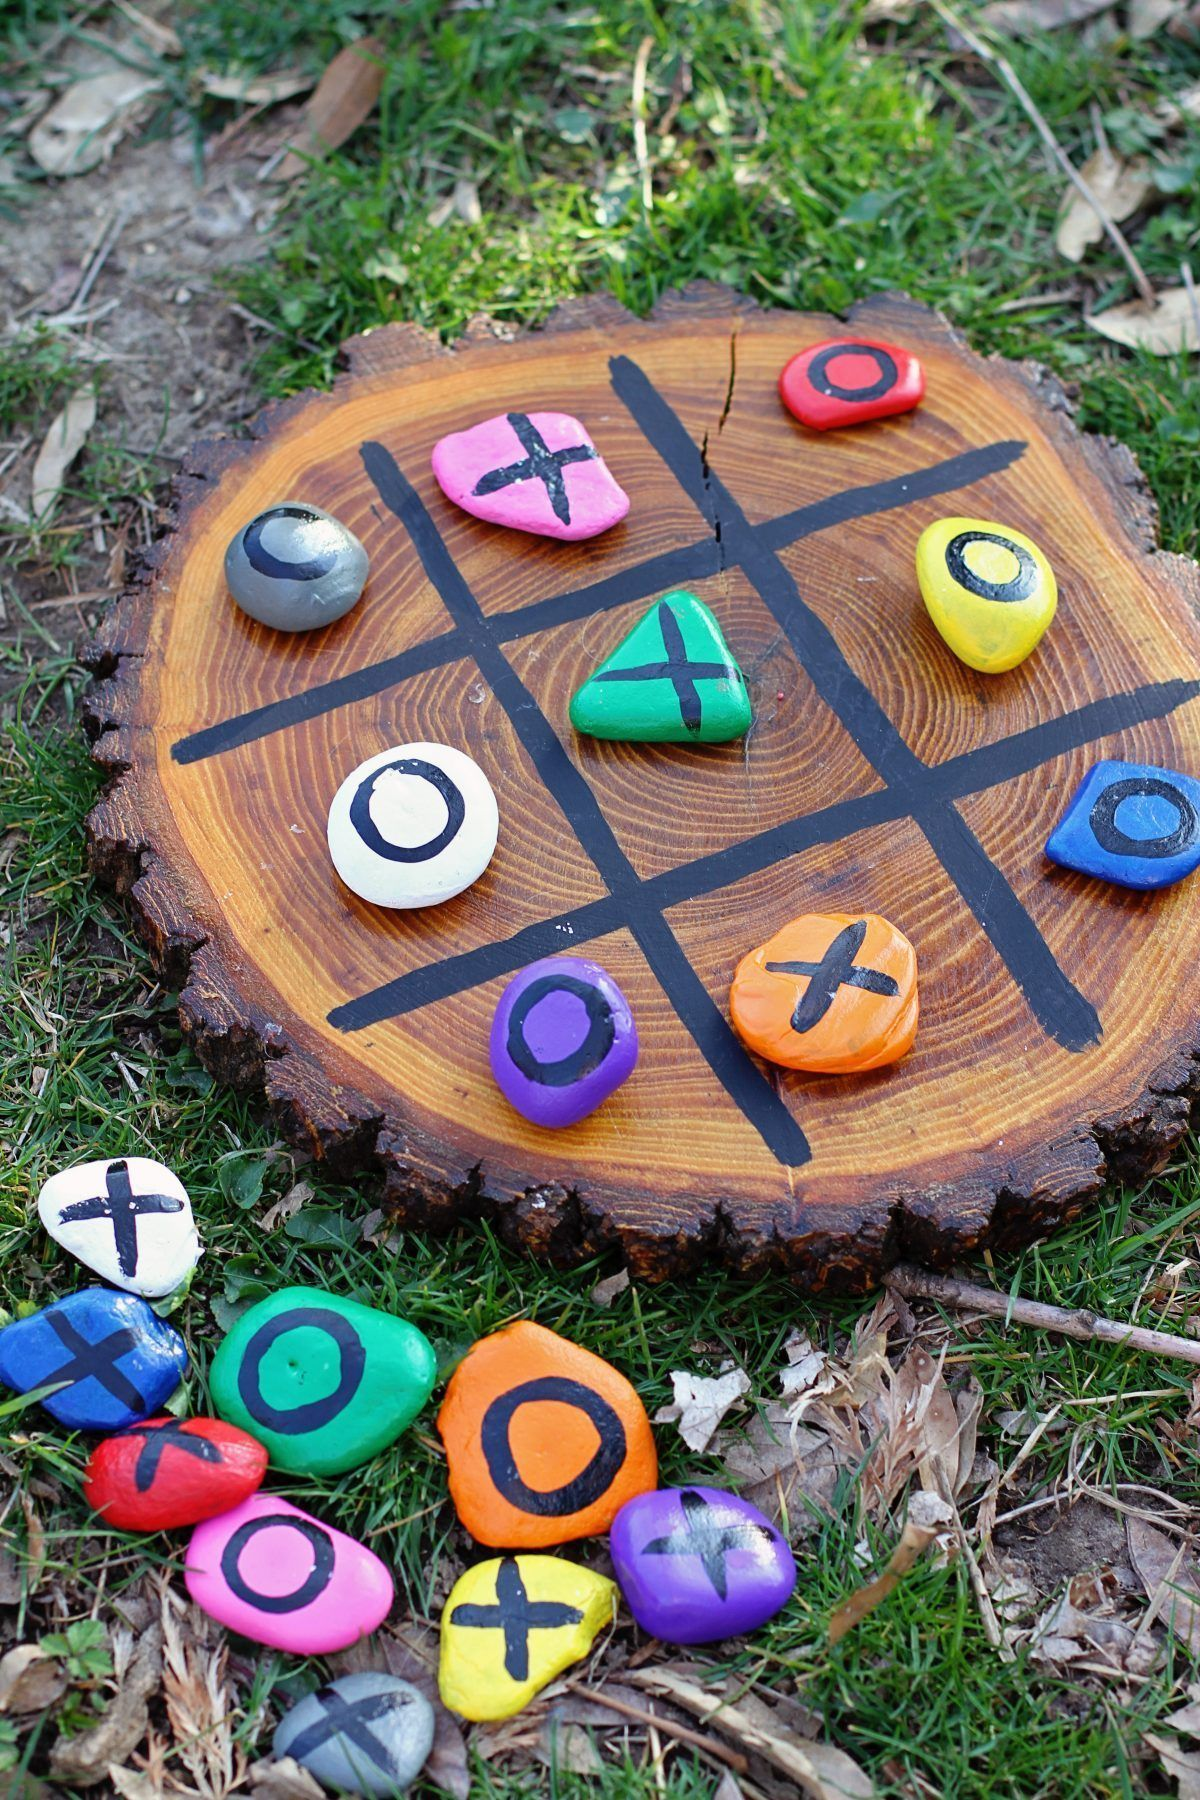 Photo of DIY tic-tac-toe painted rocks kids nature project craft